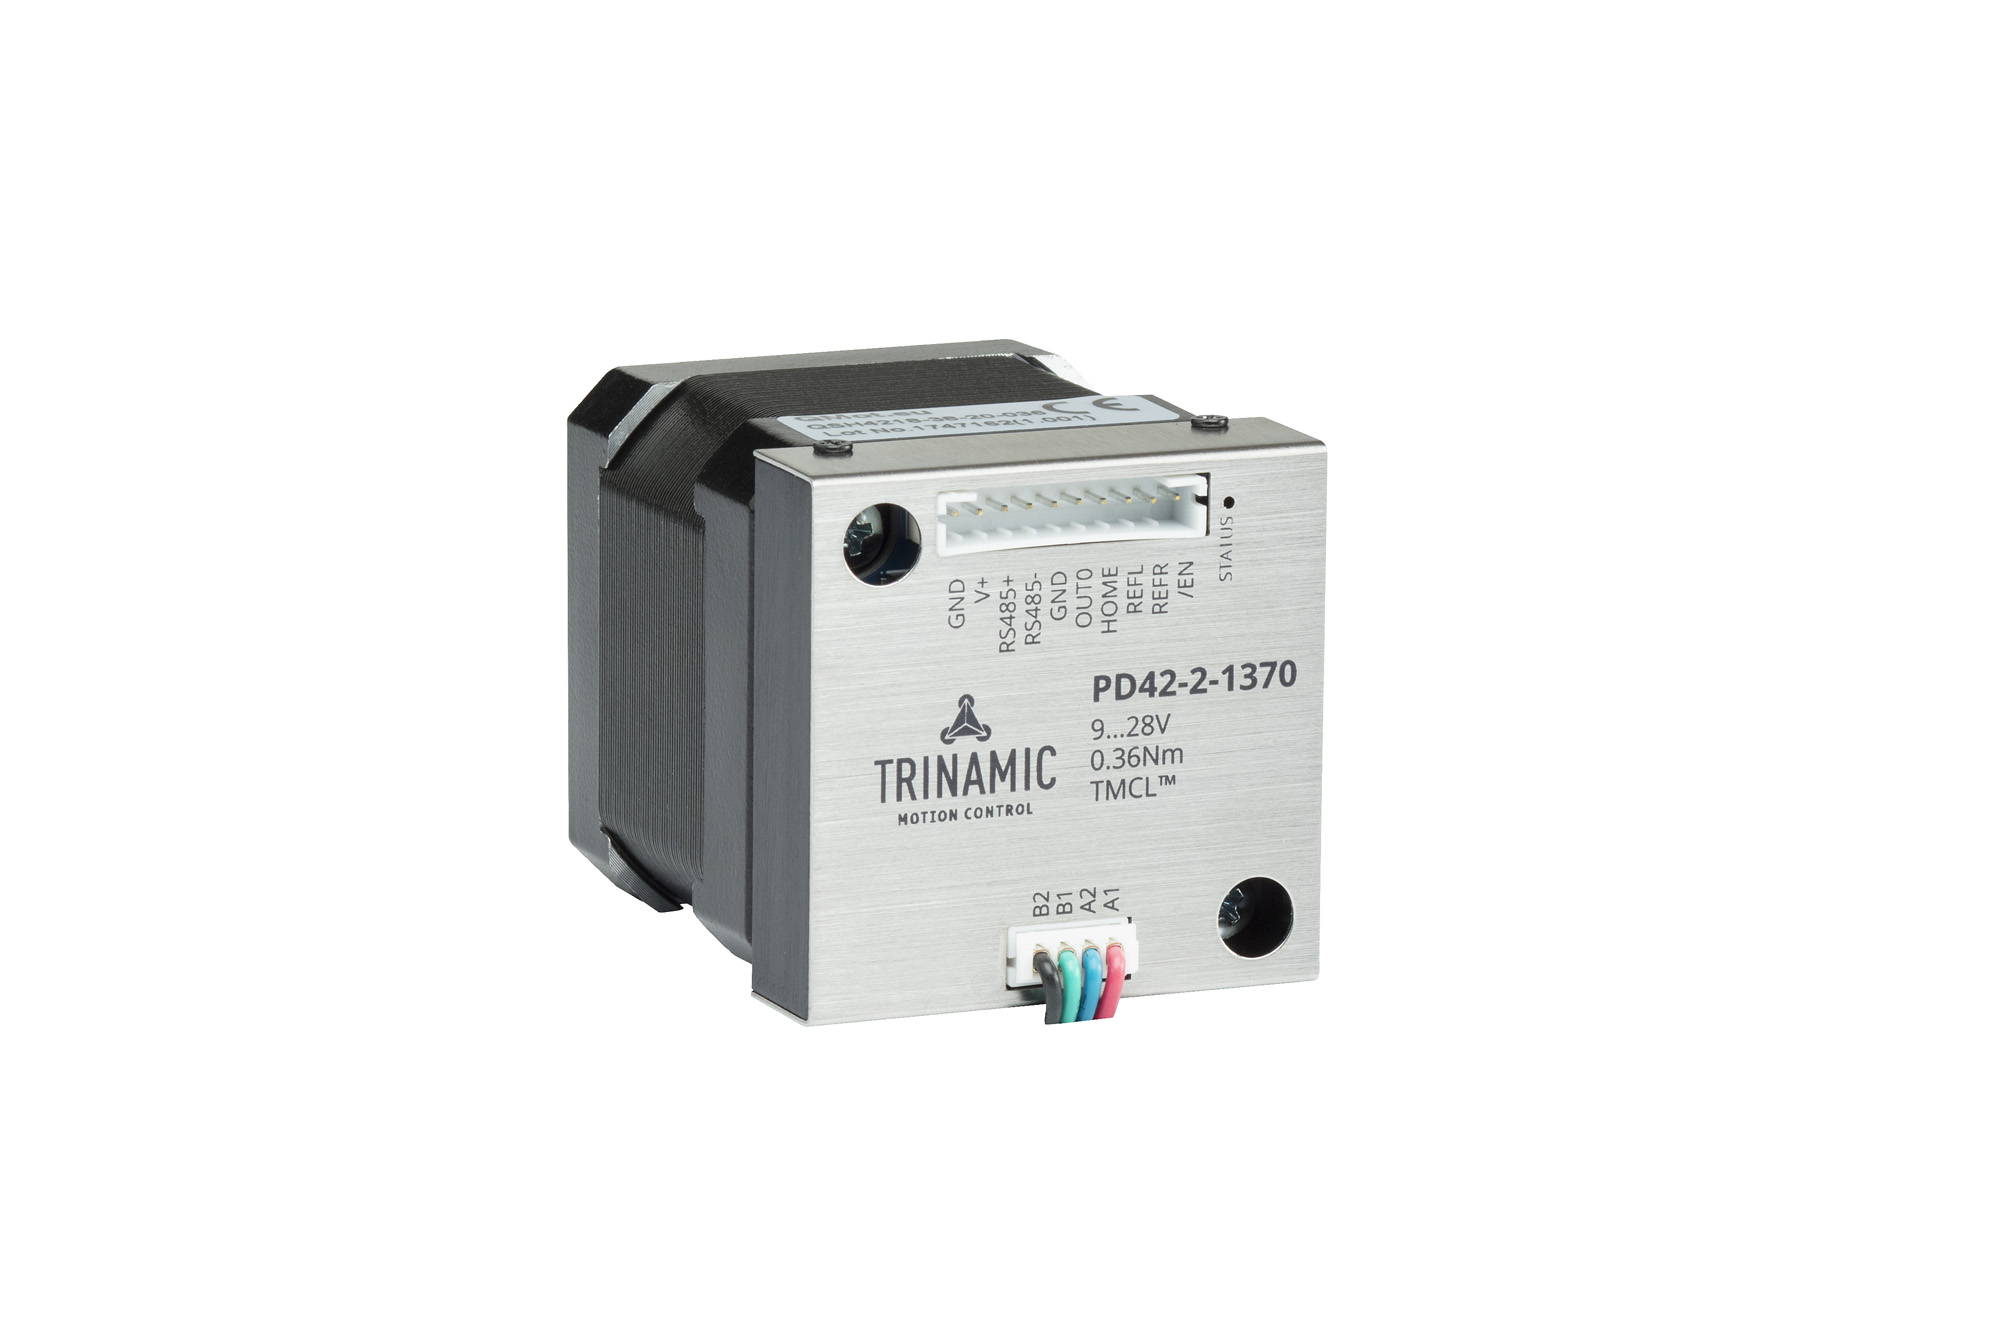 TRINAMIC Motion Control - PANdrive PD42-2-1370-TMCL